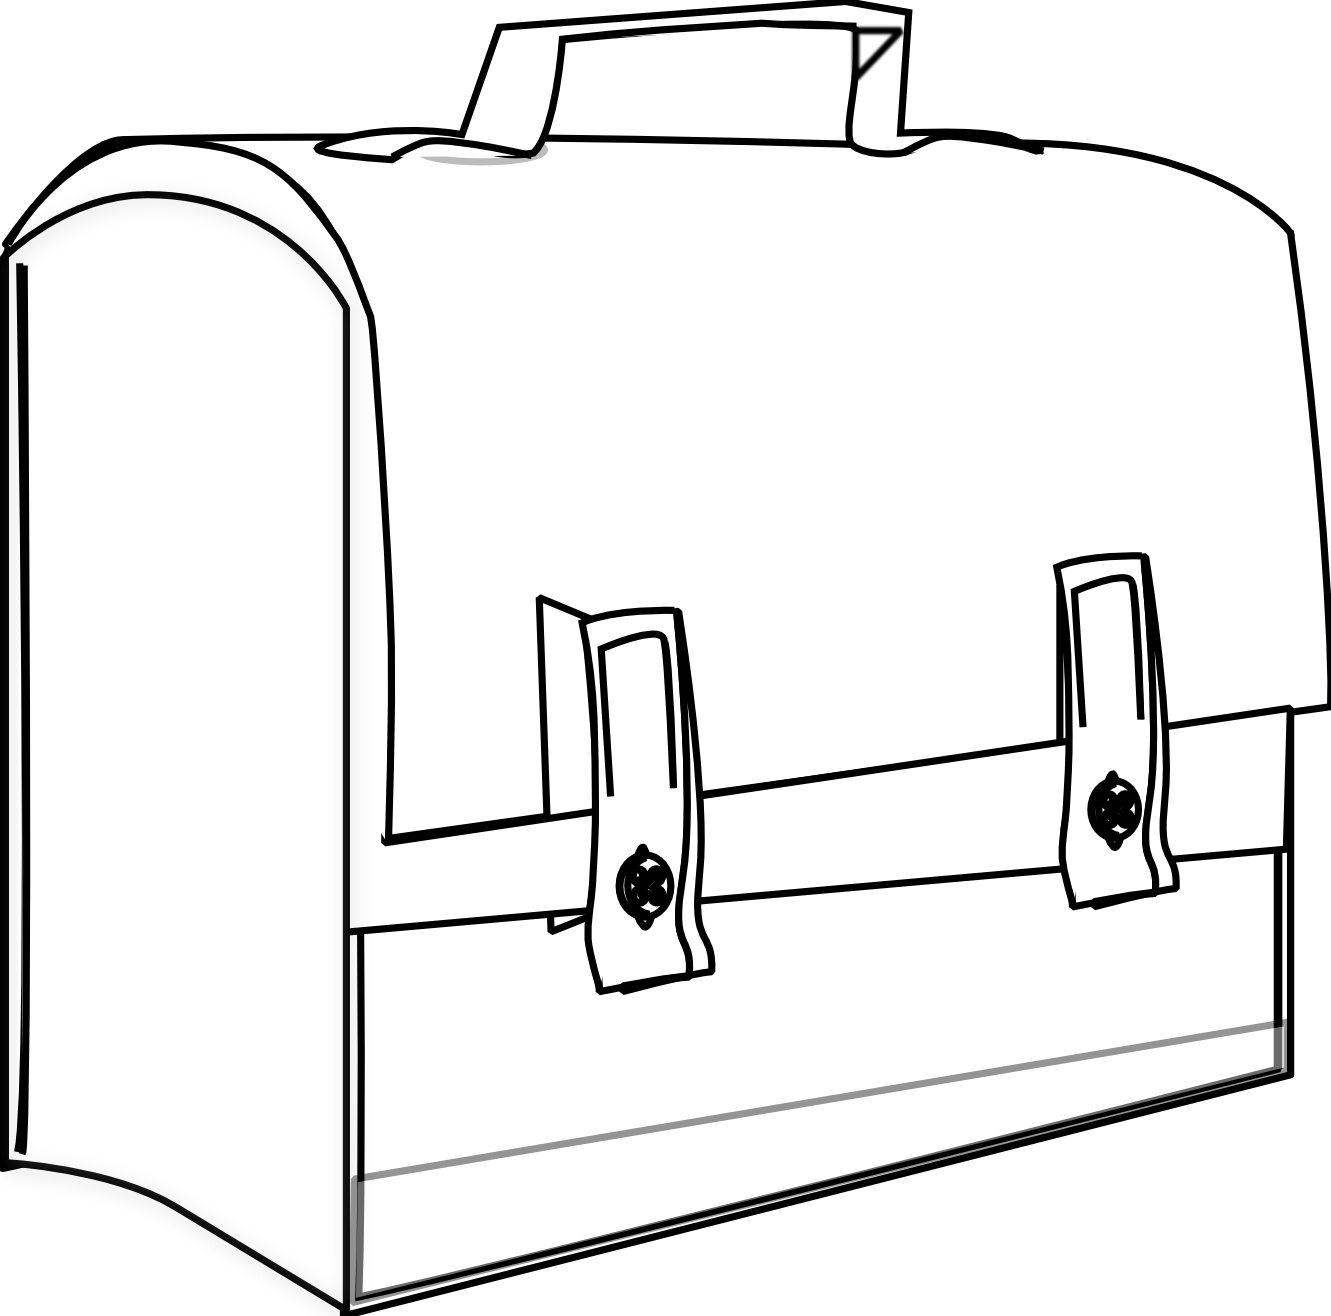 Suitcase Clipart Black And White